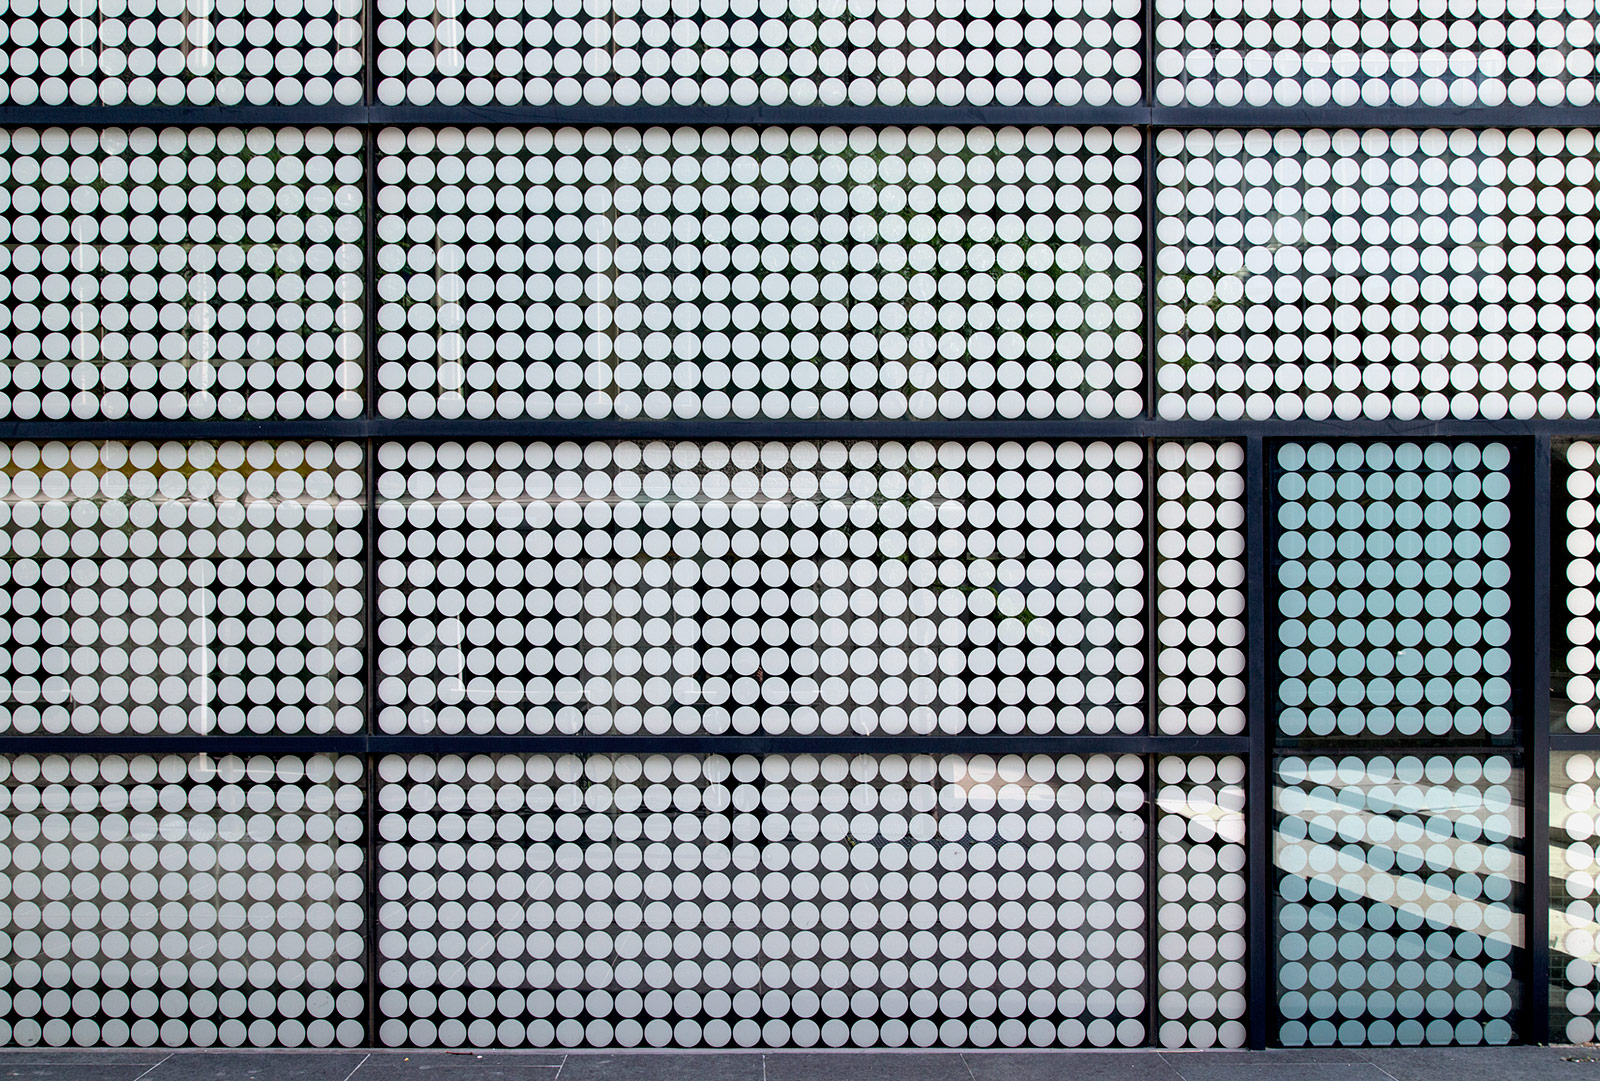 20140817. White circles in glass rectangles. Minimal Aesthetic 3